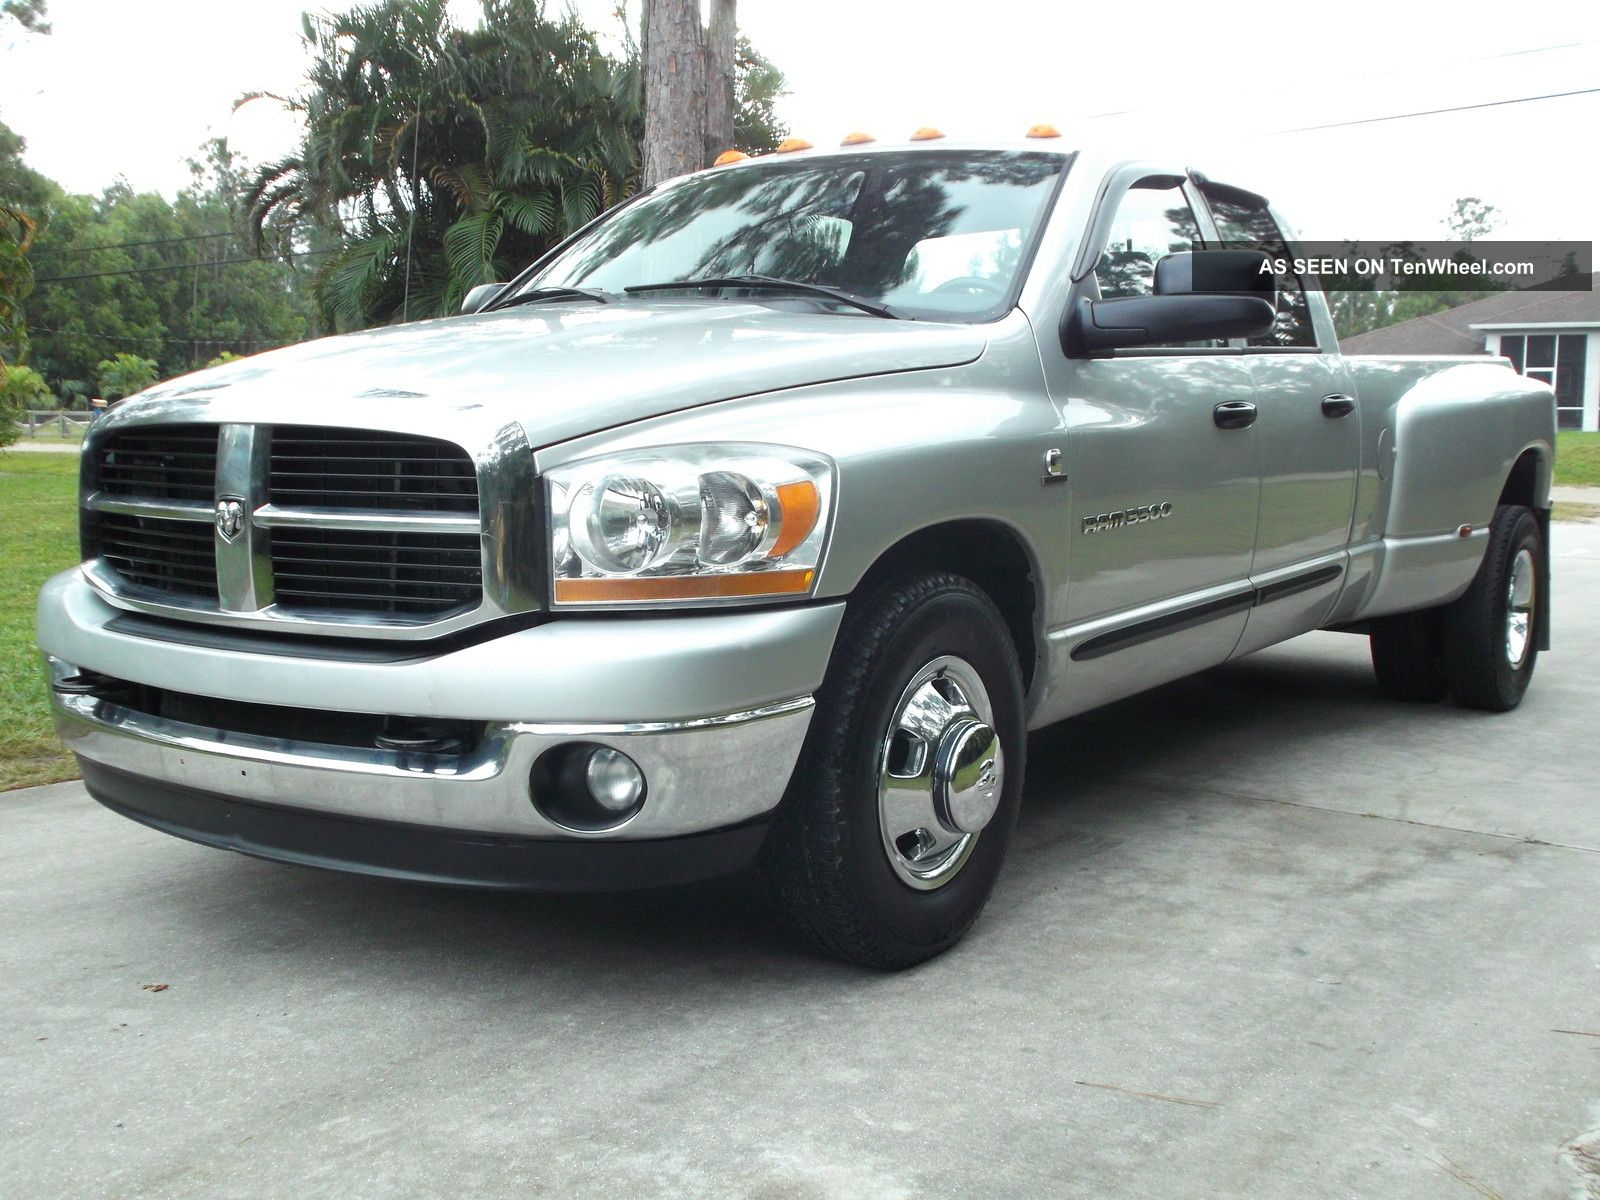 2006 dodge ram 3500 5 9 cummings diesel quad cab dually 2wd slt with tow pack. Black Bedroom Furniture Sets. Home Design Ideas